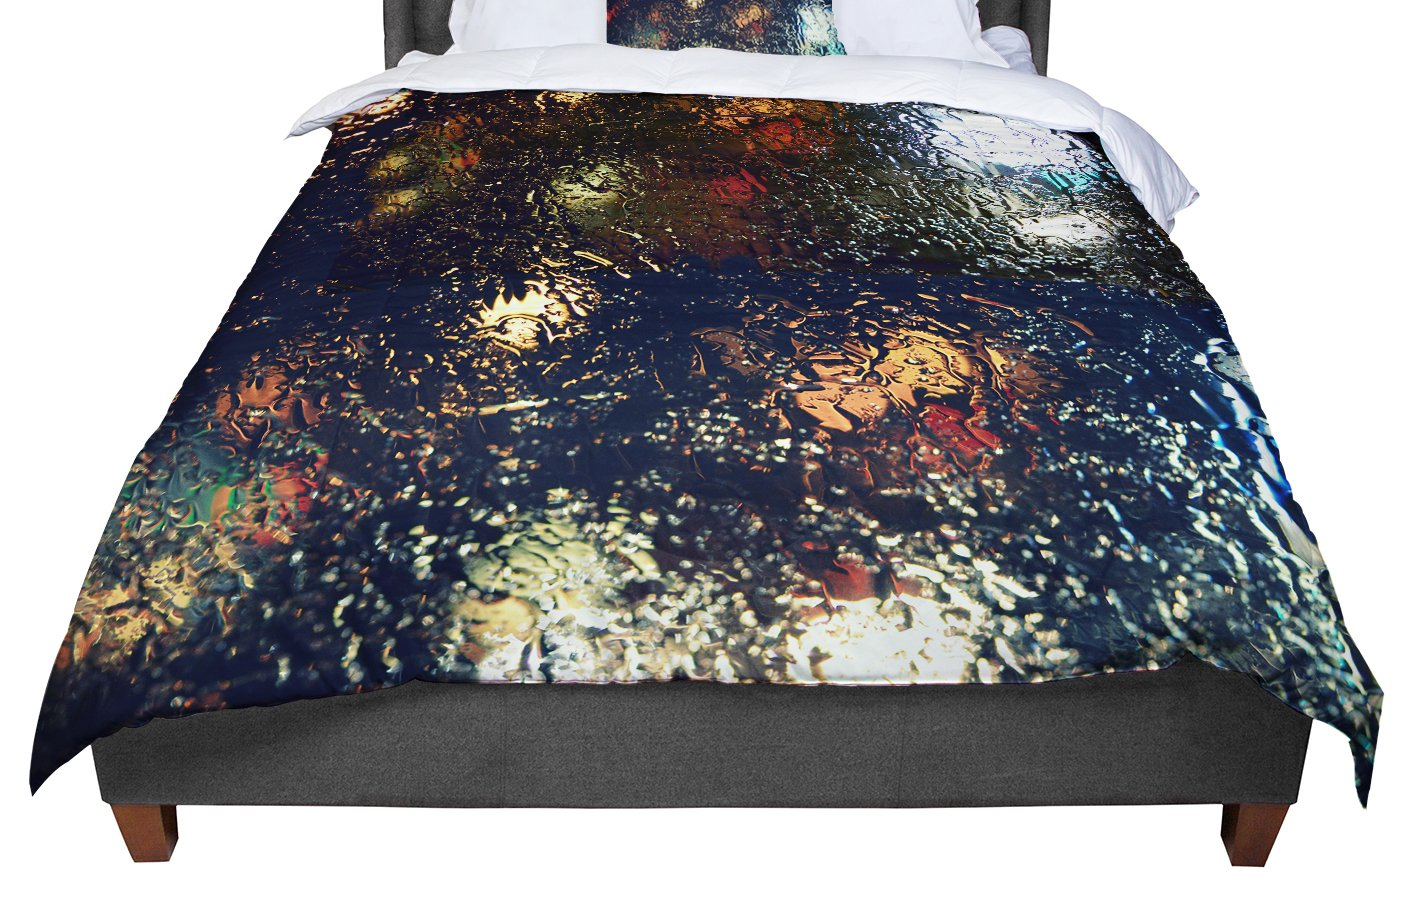 KESS InHouse Robin Dickinson Blinded Water Black King 104 X 88 Cal King Comforter